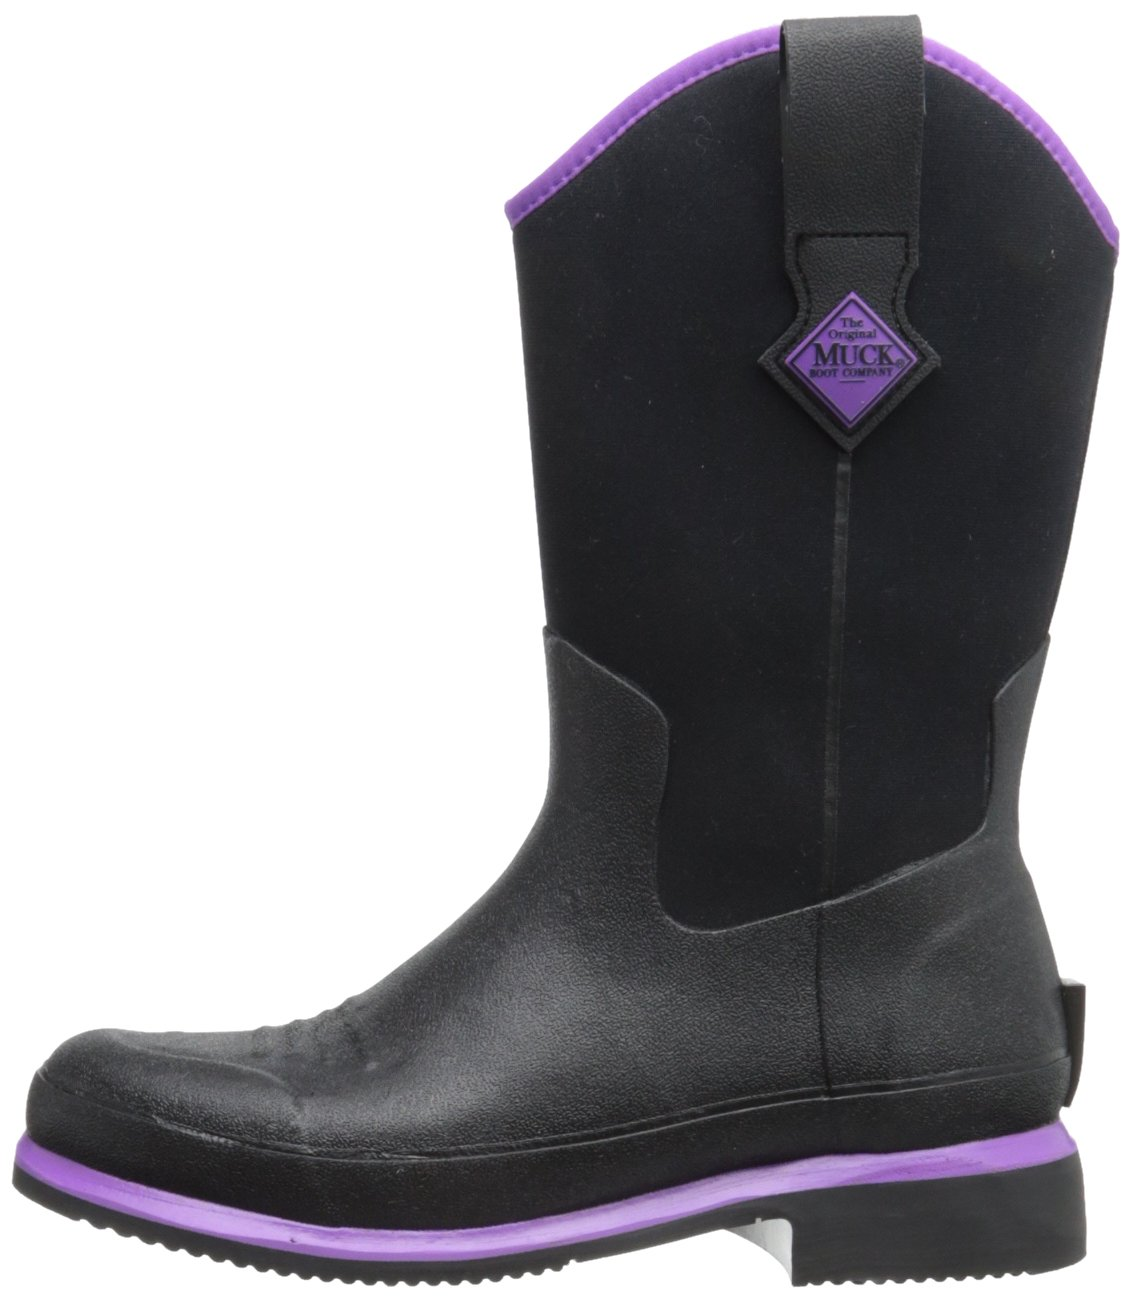 MuckBoots Women's 6 Ryder Mid Boot B00FHVVXVC 6 Women's W US|Black/Purple ed194d